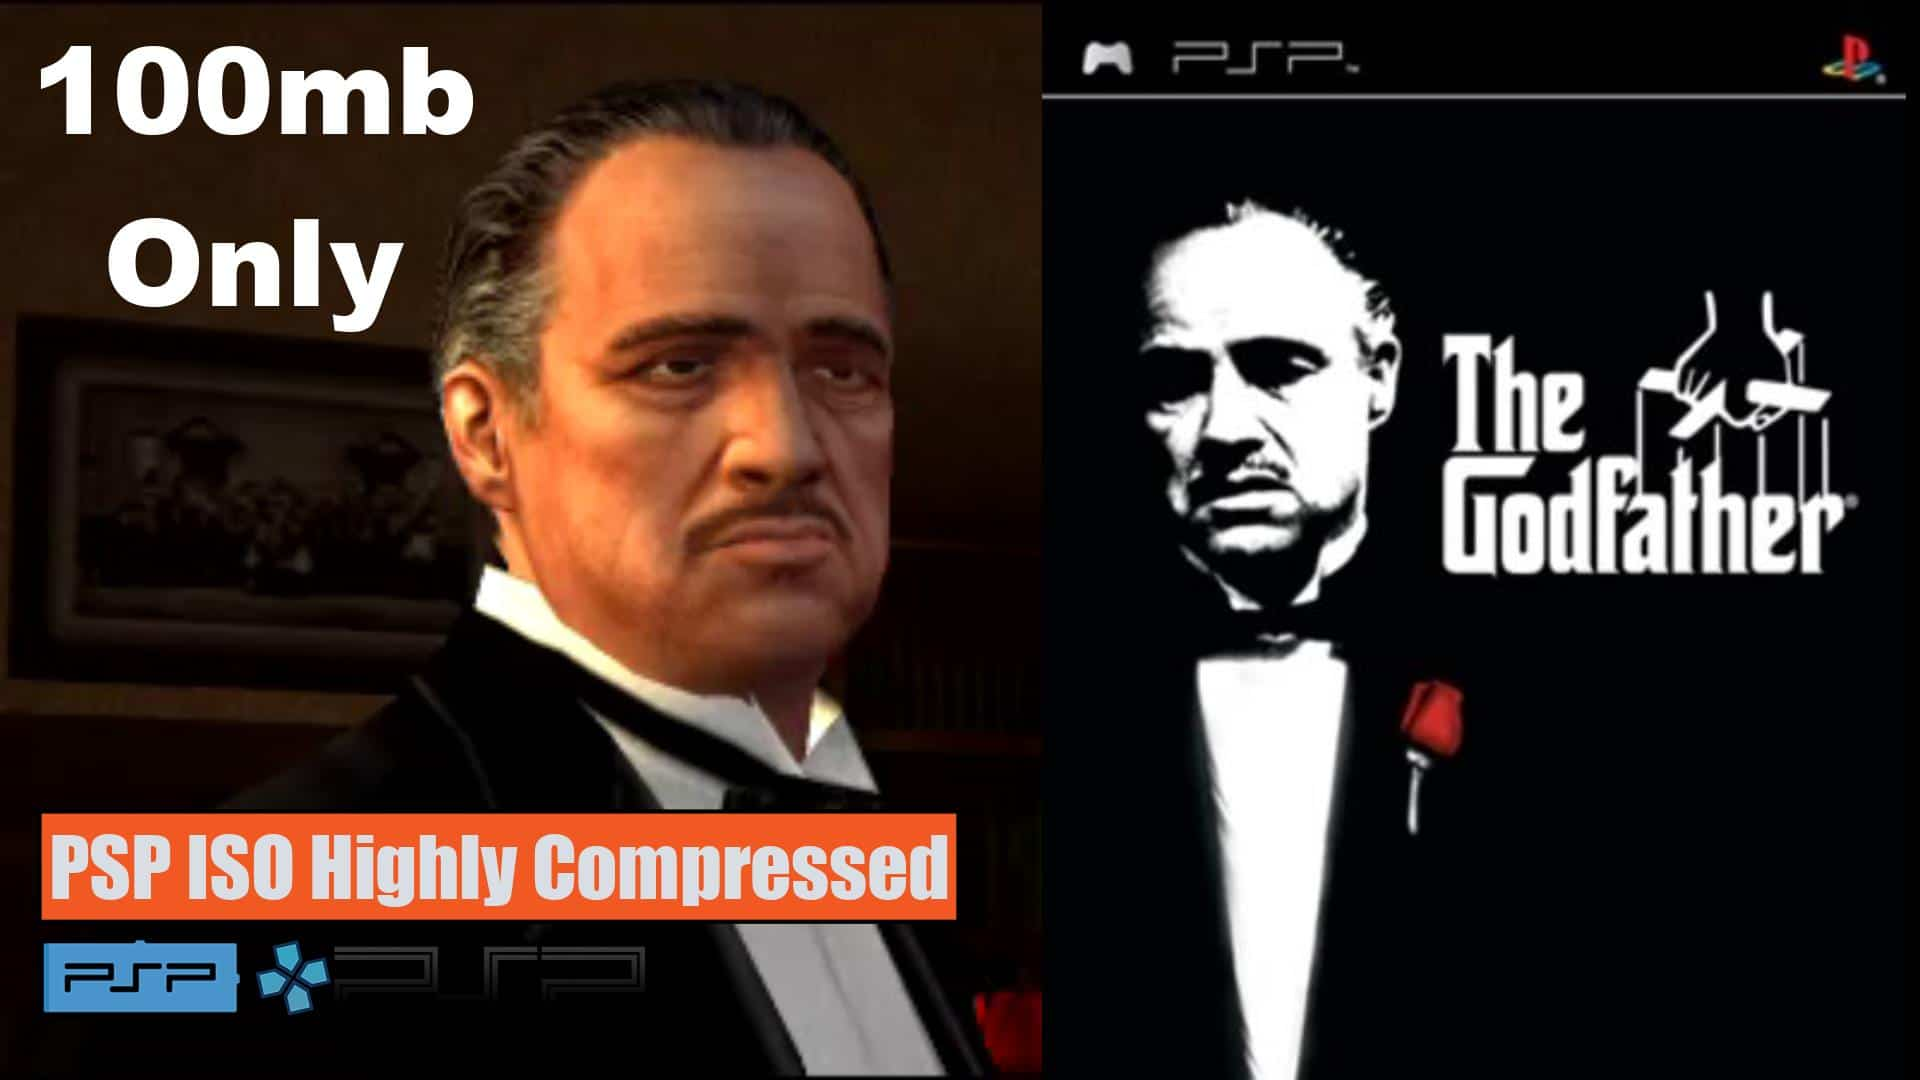 The God Father Mob Wars PSP ISO Highly Compressed